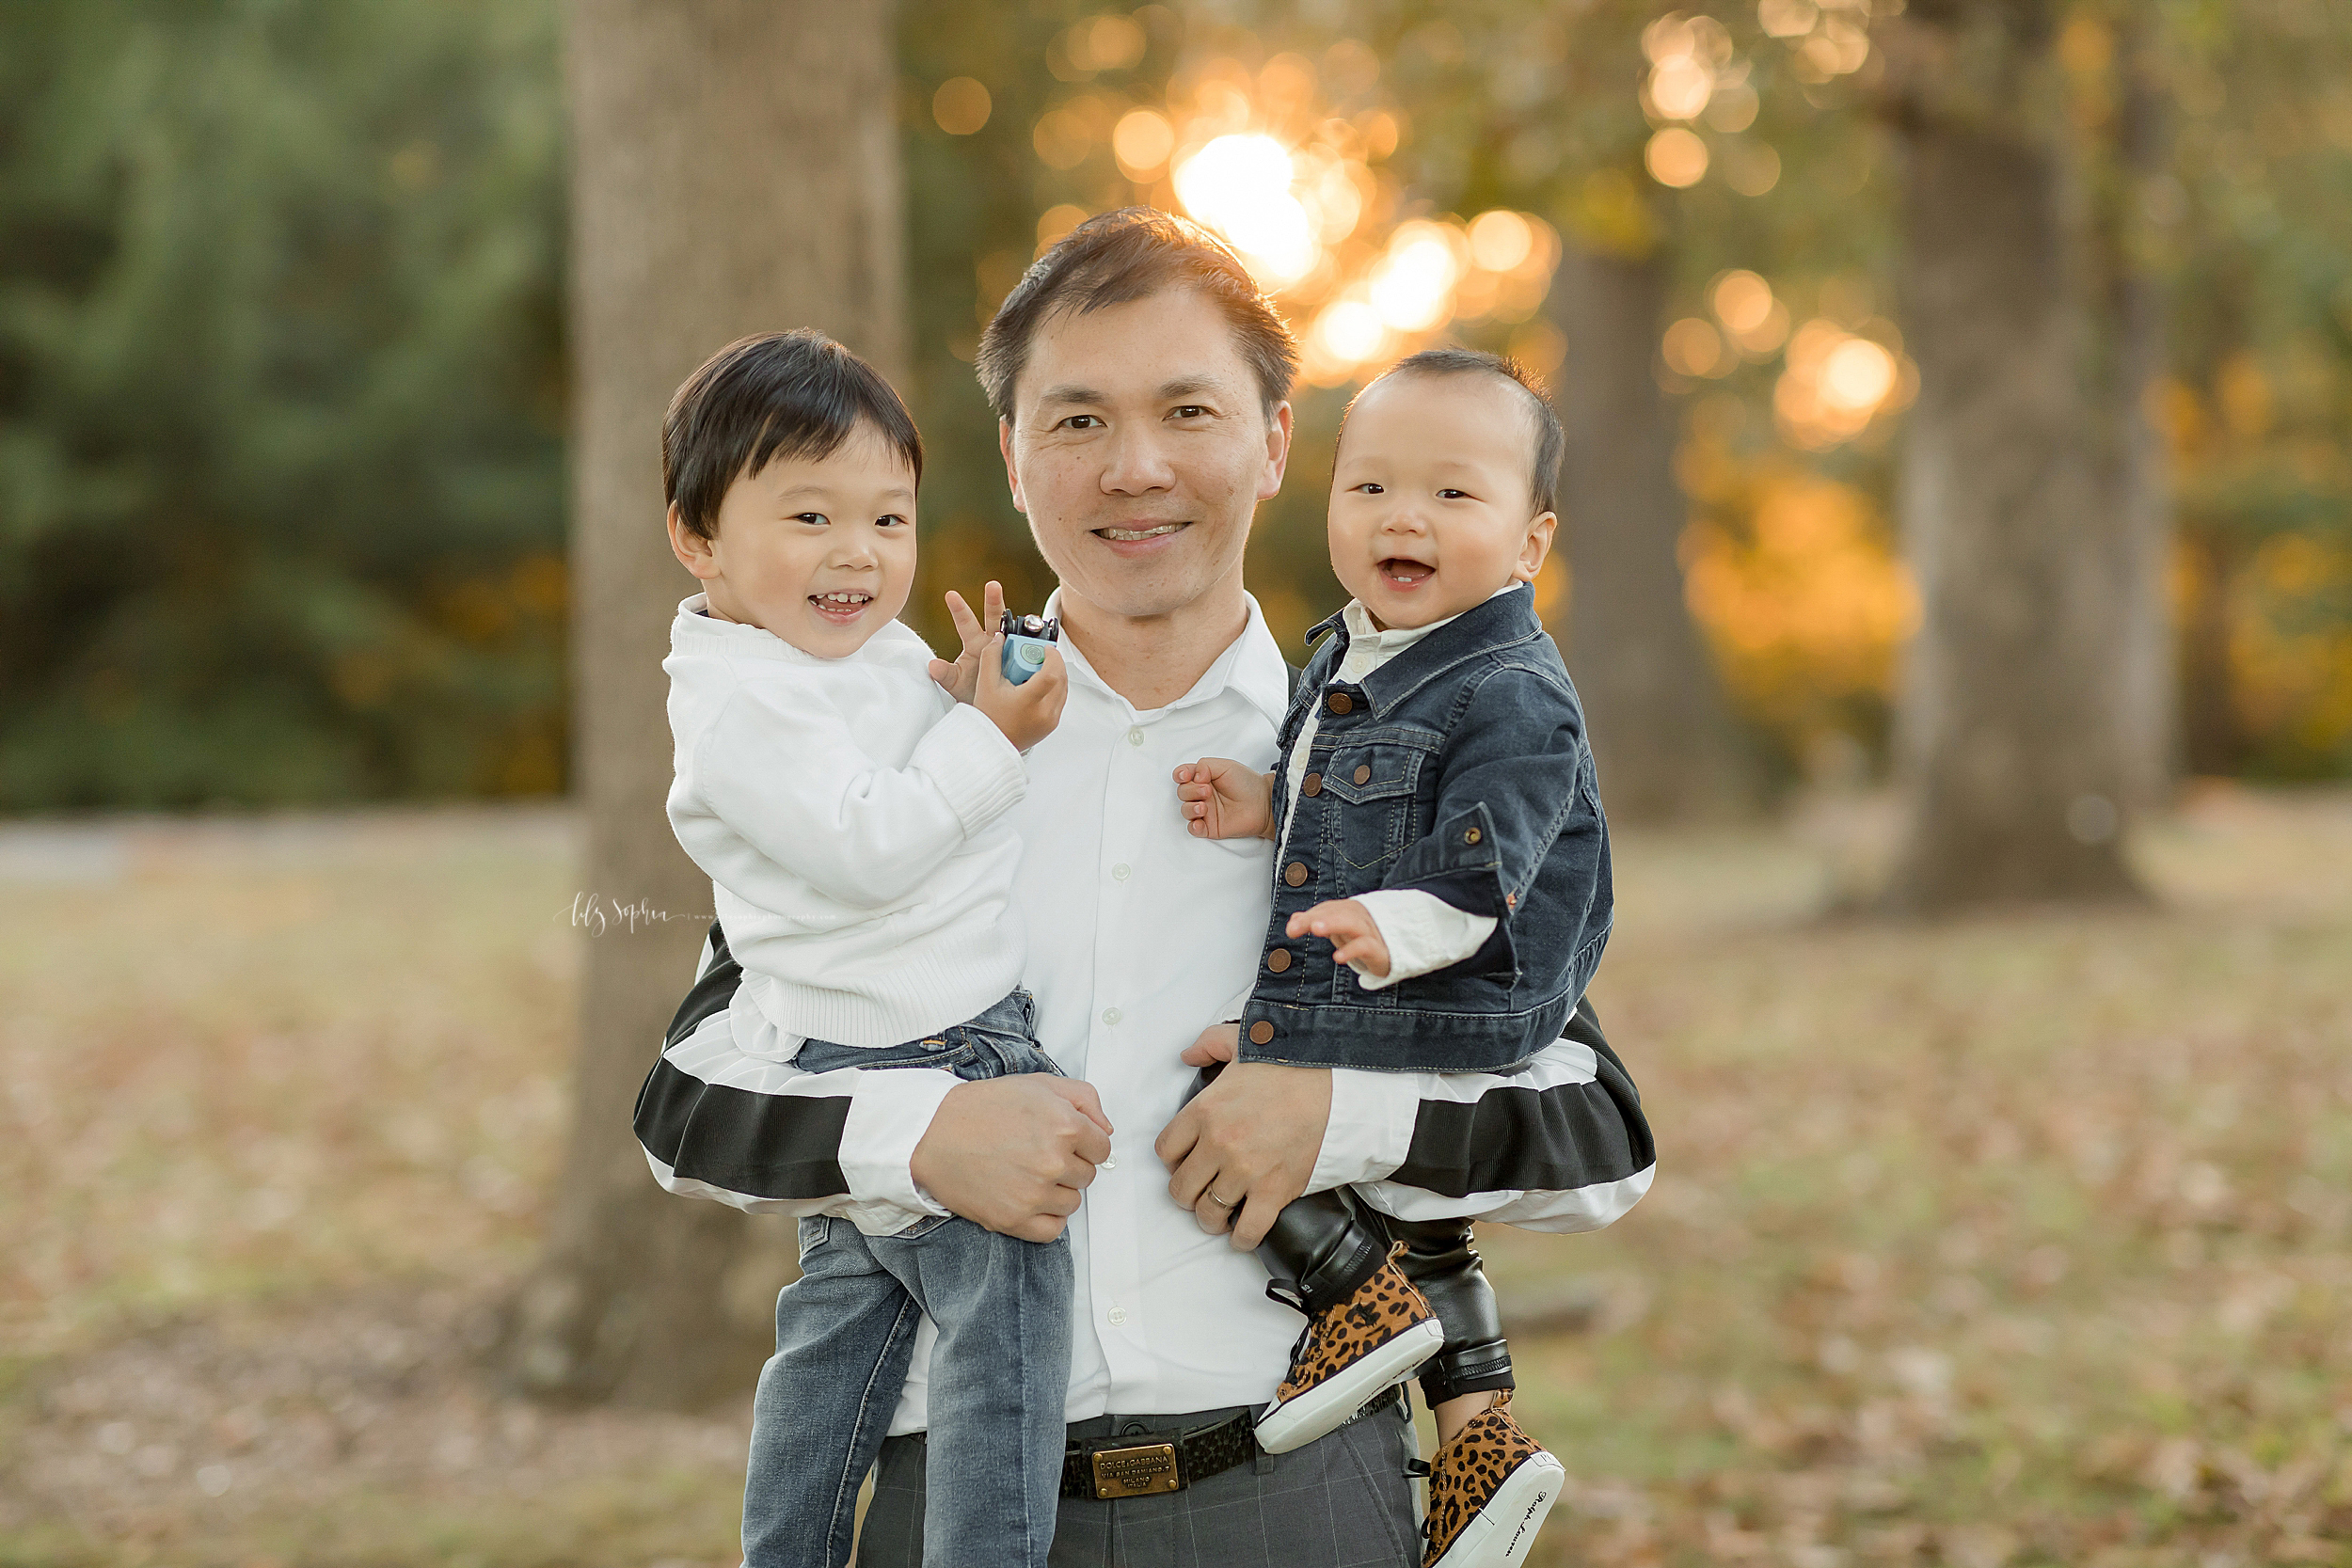 atlanta-buckhead-brookhaven-decatur-lily-sophia-photography--photographer-portraits-grant-park-intown-park-sunset-first-birthday-cake-smash-one-year-old-outdoors-cool-asian-american-family_0090.jpg